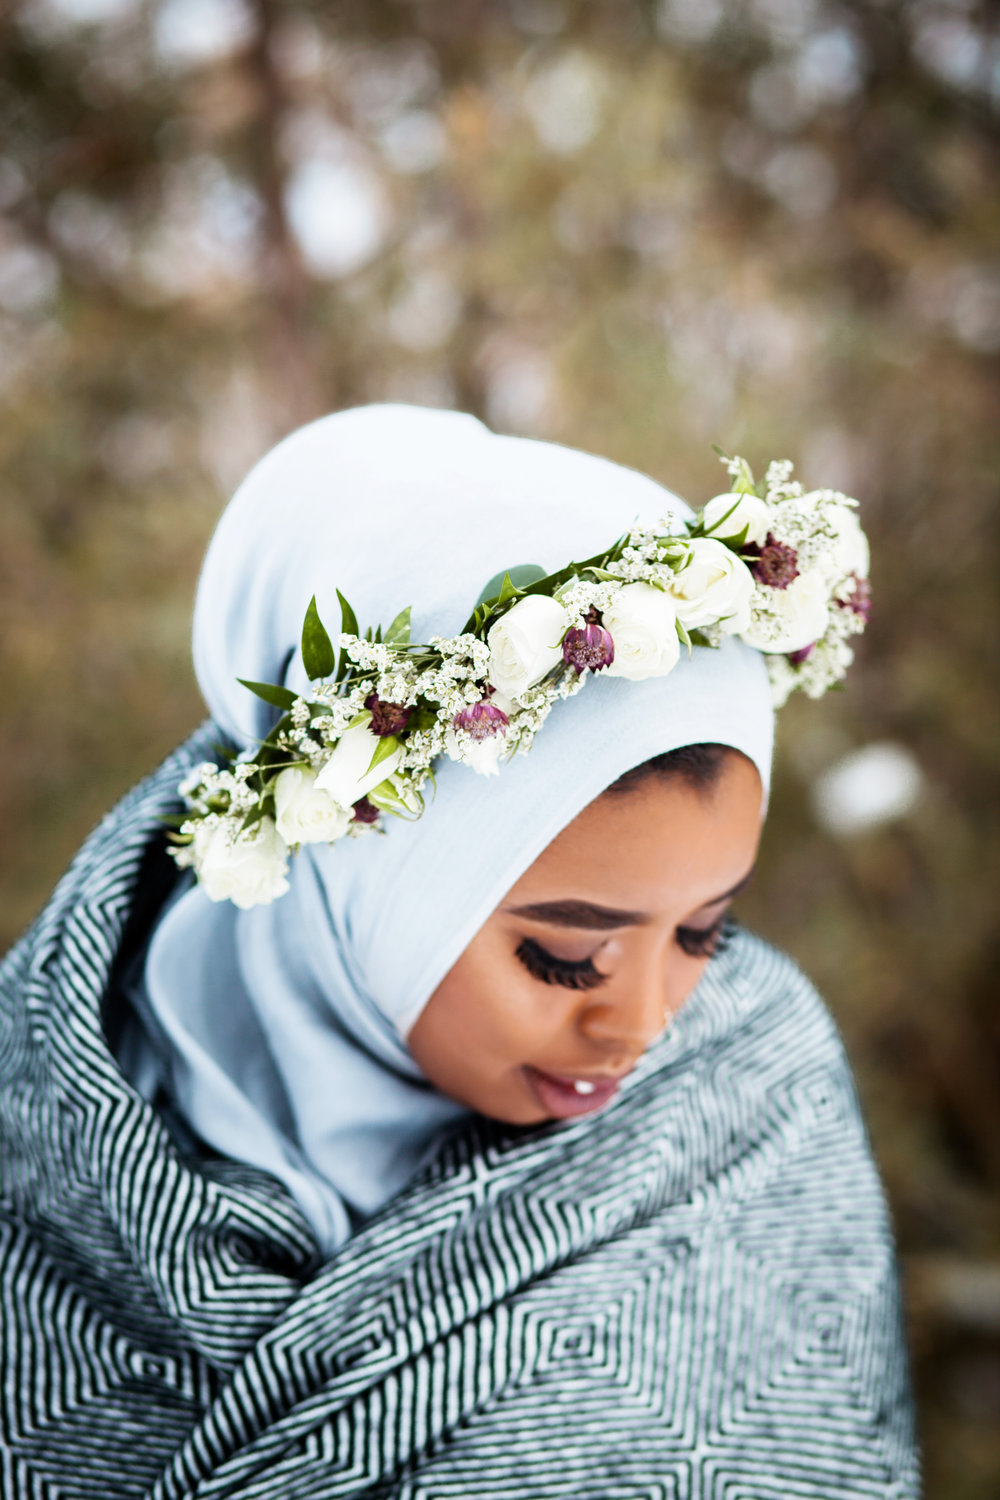 Somali Female Photographer Hijabi Toronto London Ottawa Eritrean Habesha Entrepreneur Karimah Gheddai Winter Portraits Muslim Canada Halima Jama Flower Crown